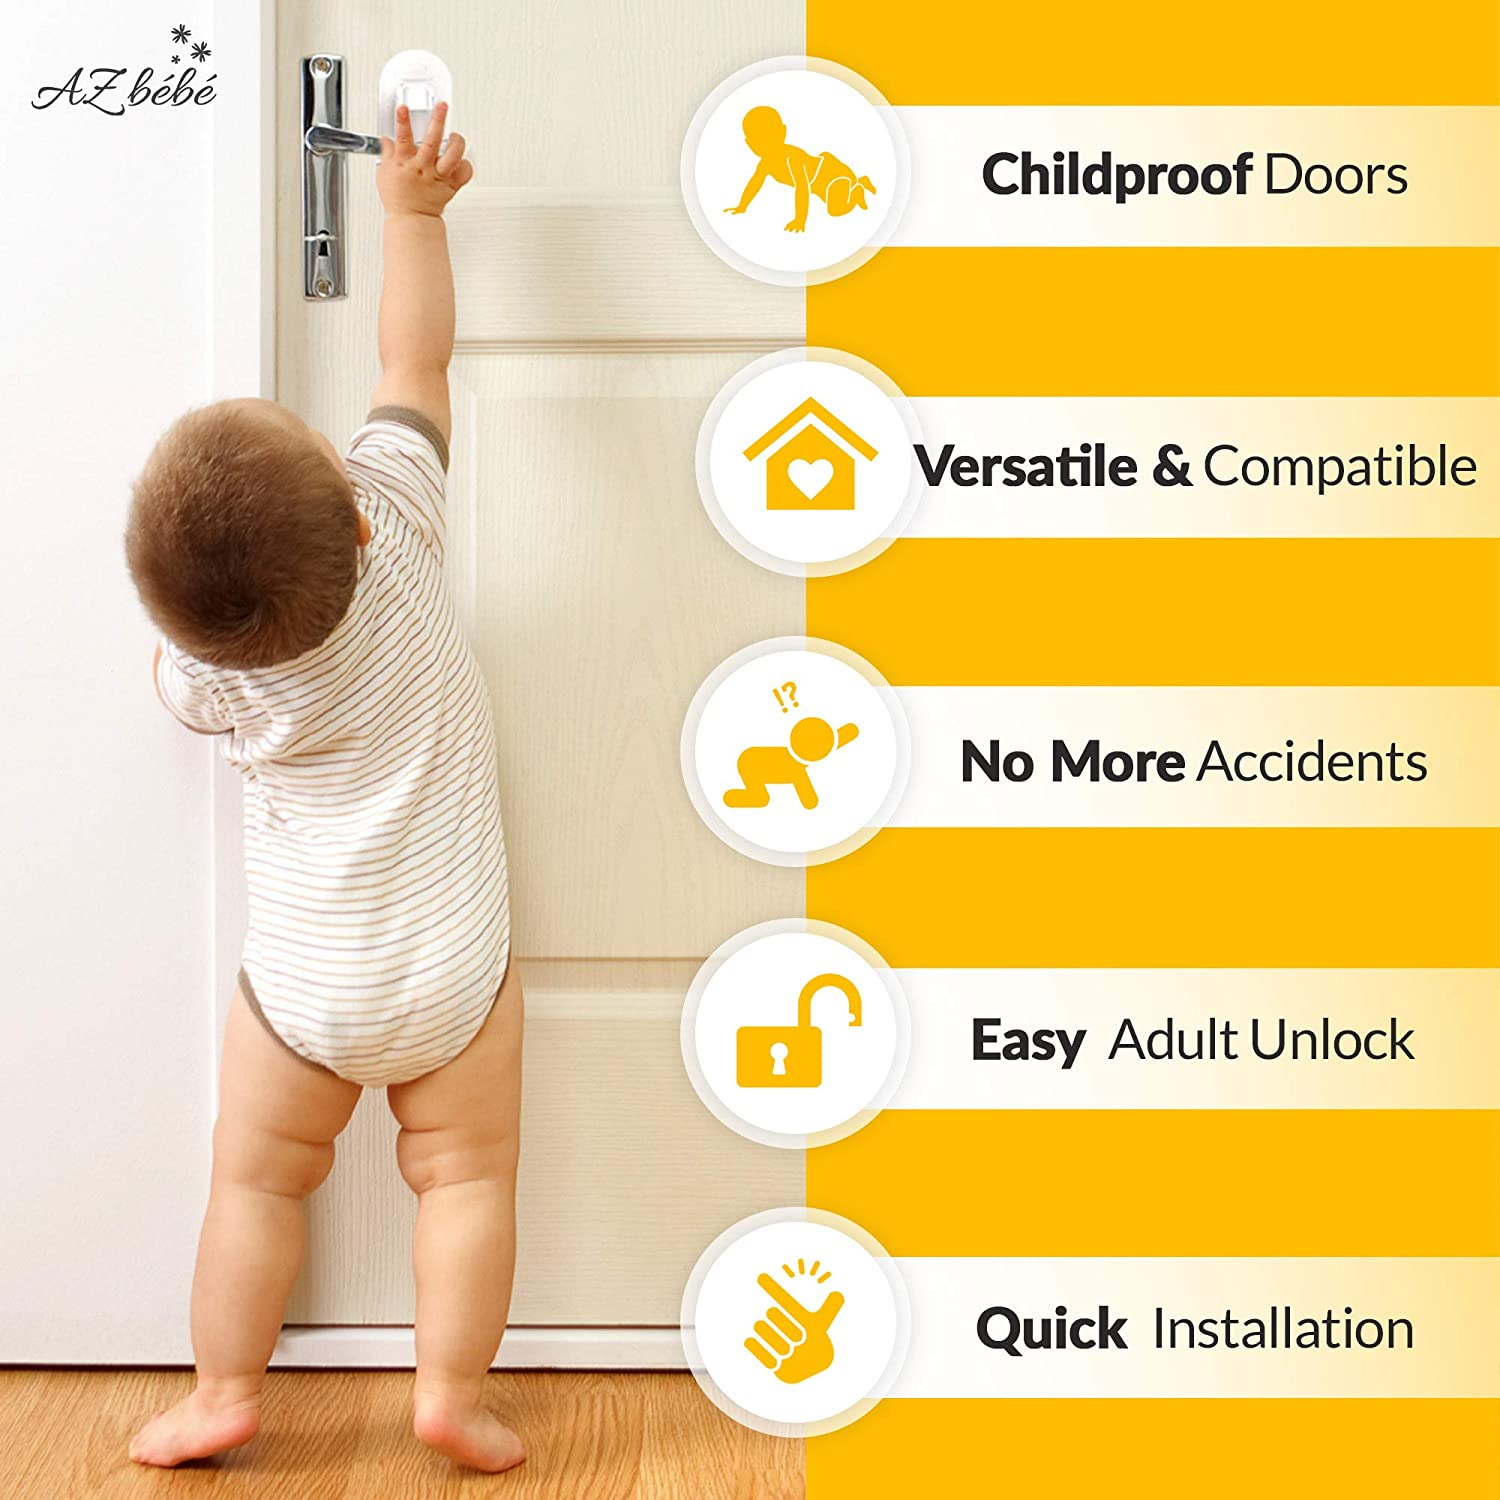 AZbébé Baby Proof Lever Lock   Door & Cabinet Locks for Children Safety   Use for Bathroom, Toilet, Bedroom, Kitchen & Closet   Child-Proof Your Home with Ease (Lever Locks)